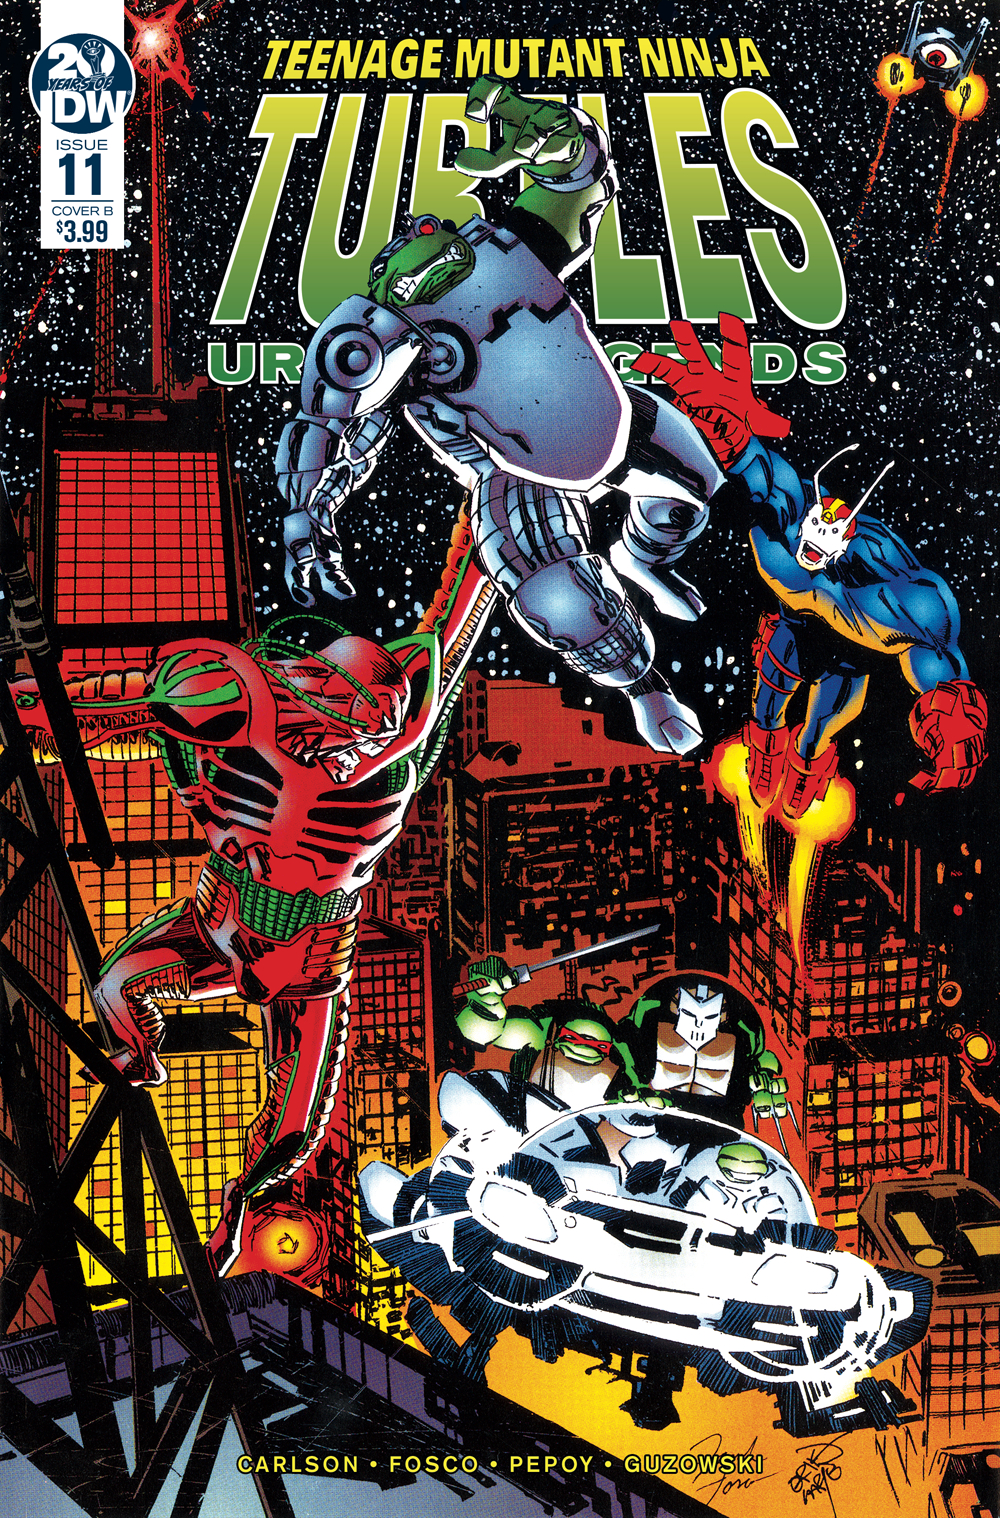 TMNT URBAN LEGENDS #11 CVR B FOSCO & LARSEN